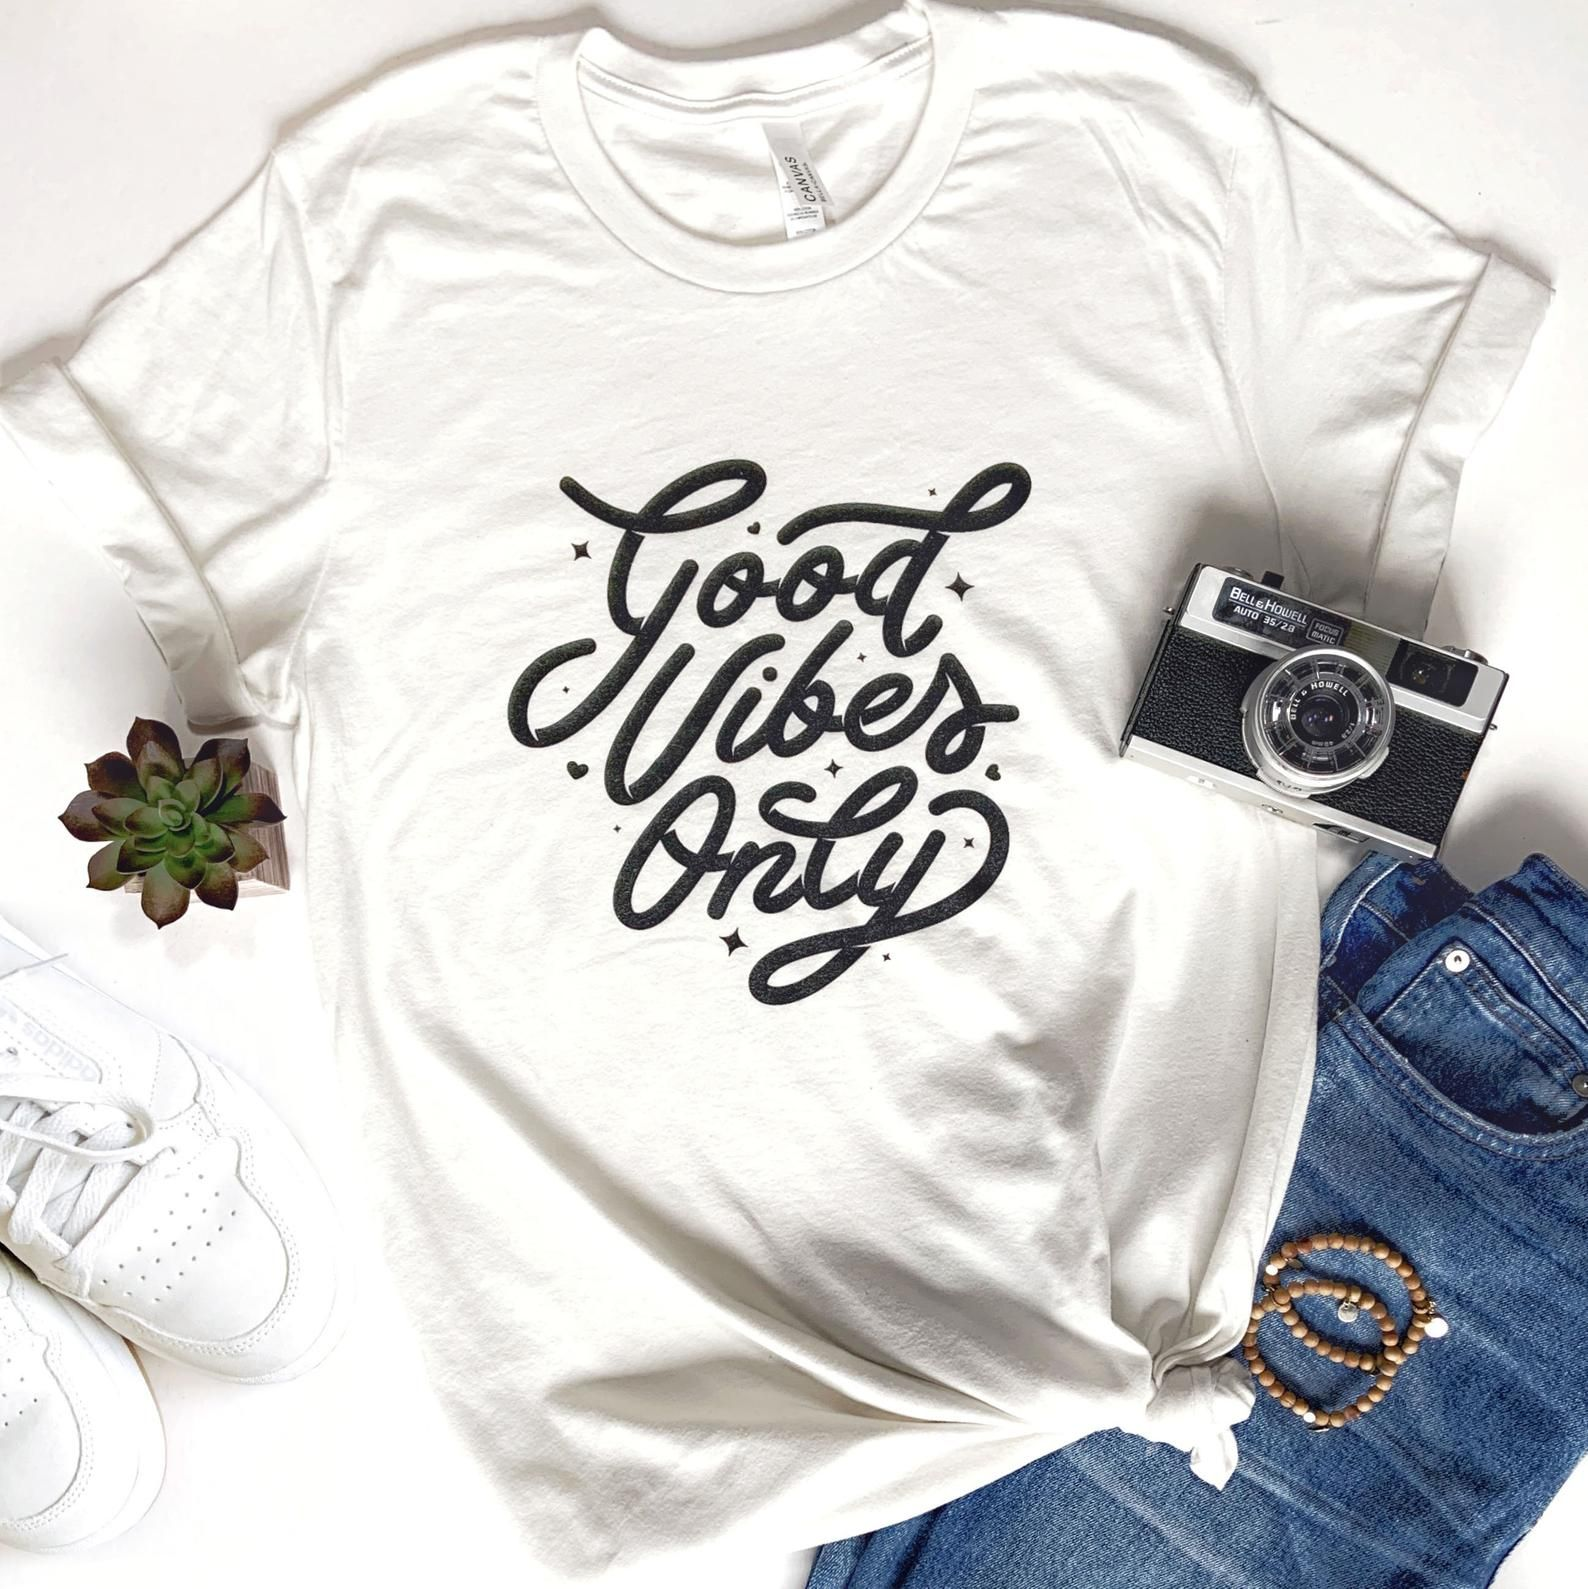 Good Vibes Only T-Shirt  Women's Shirt  Graphic Tee  | Etsy